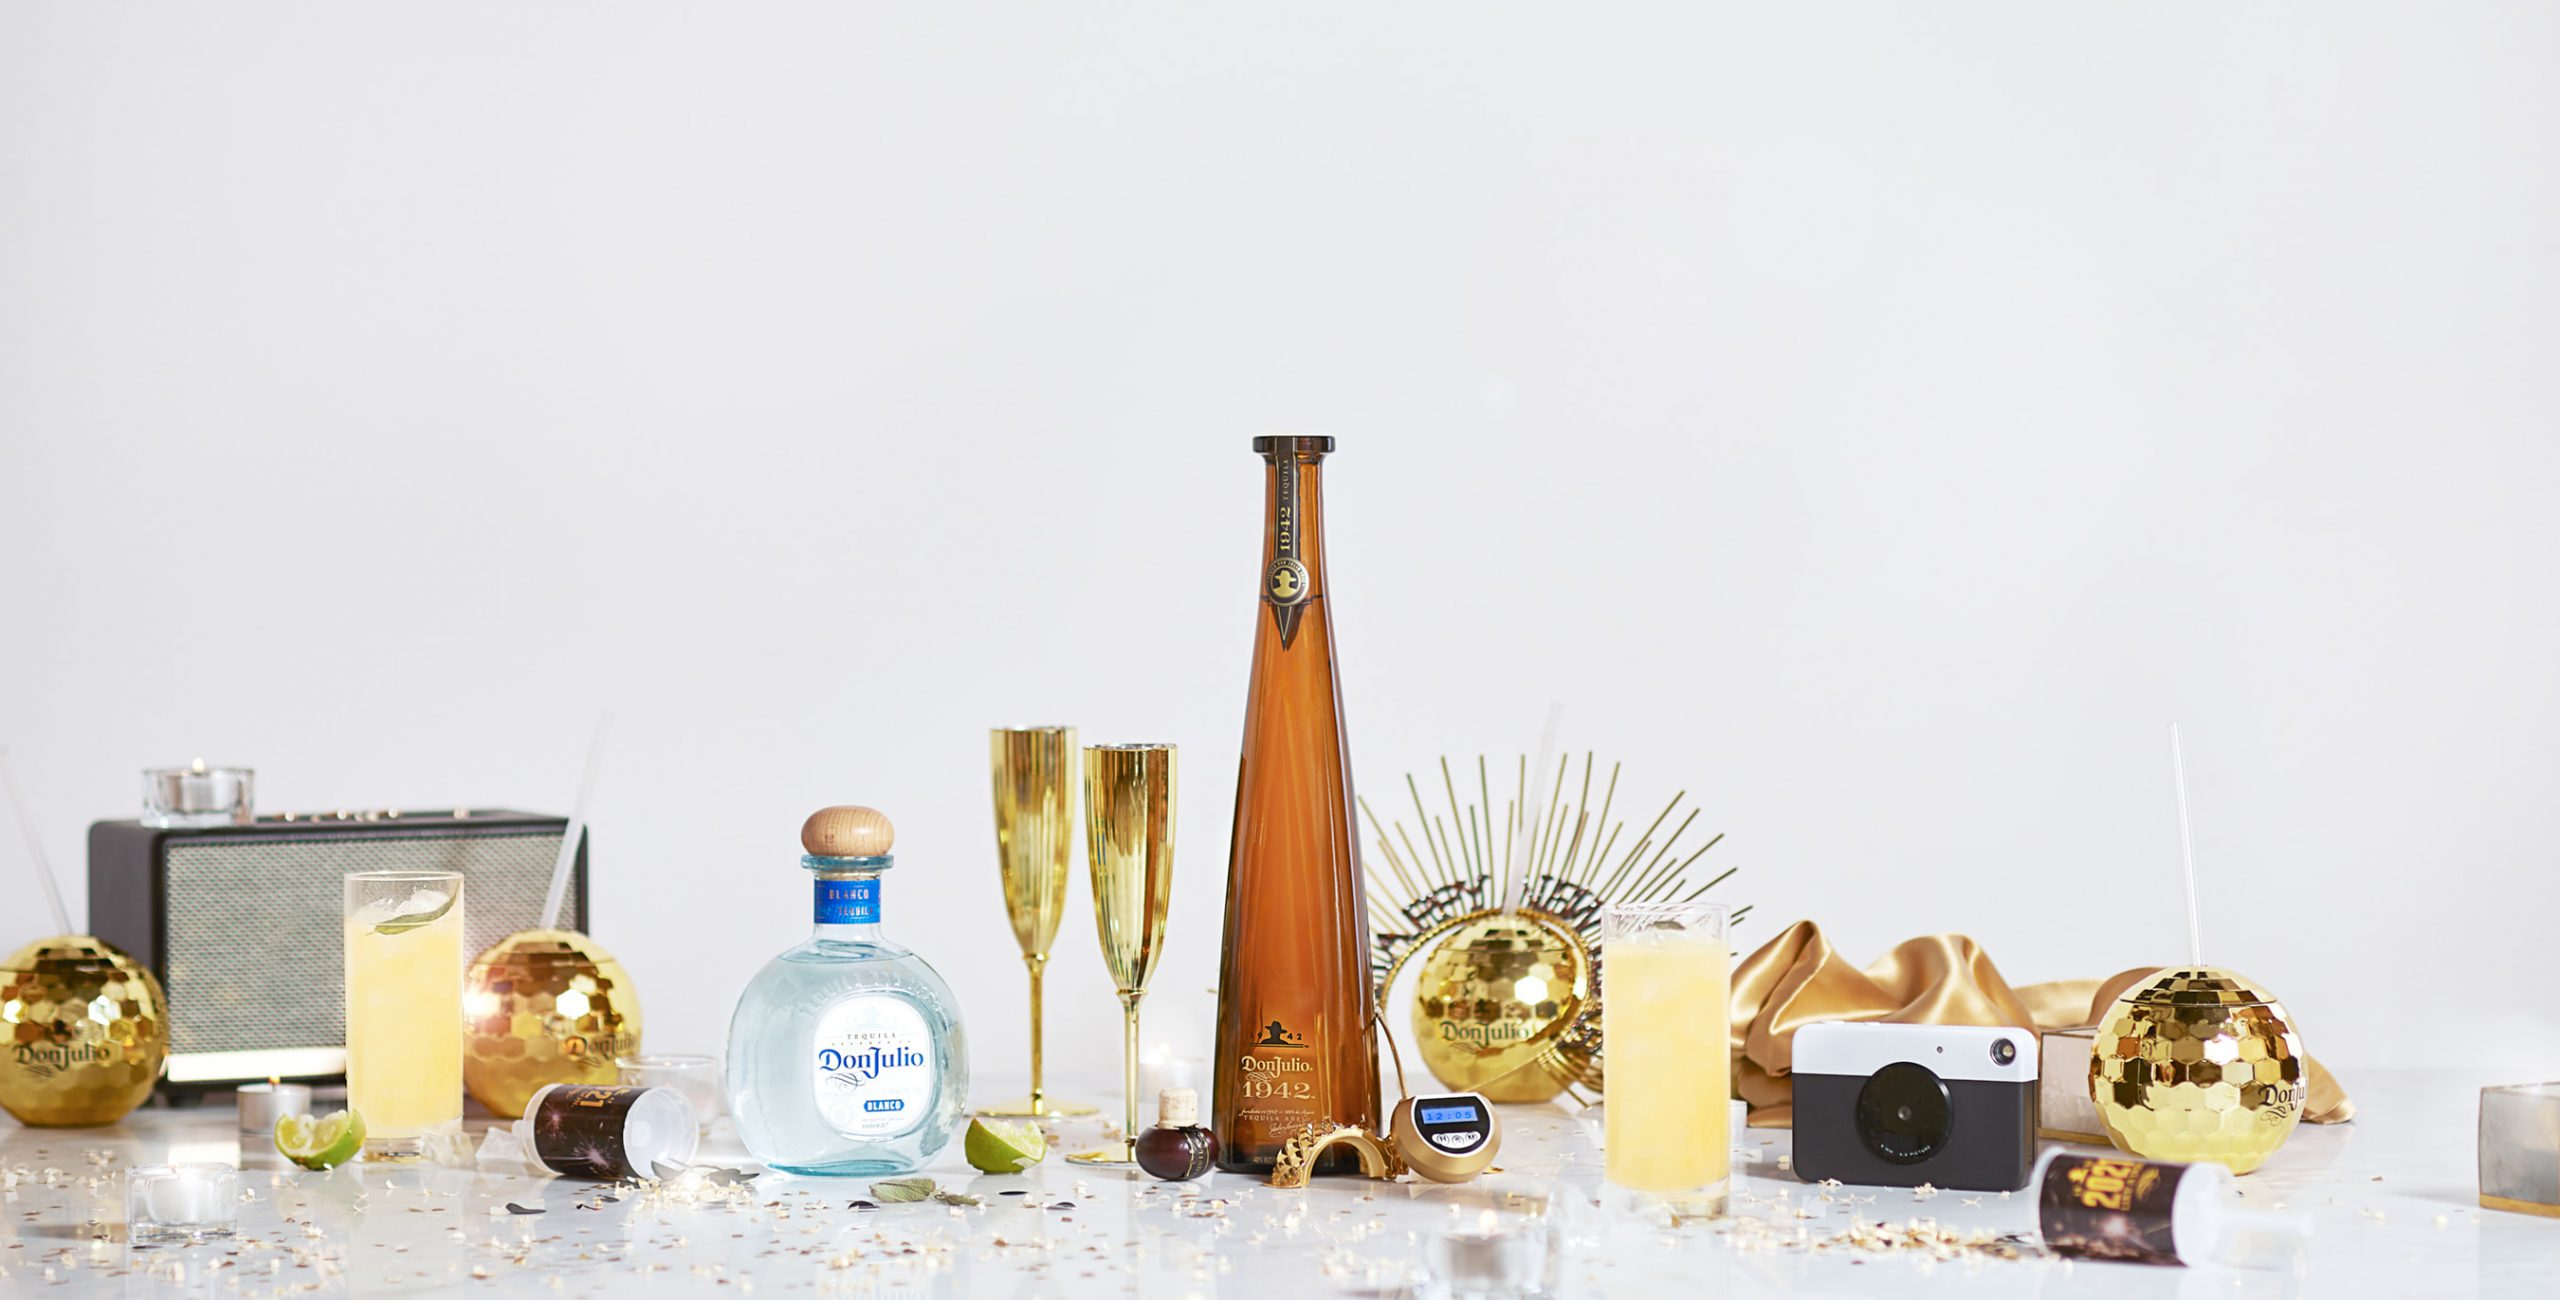 """So Long, 2020: Tequila Don Julio And Grammy-nominated Artist Big Sean Invite You To Get A Taste Of The """"don Life"""" With The Ultimate At-home Celebration This New Year's Eve photo"""